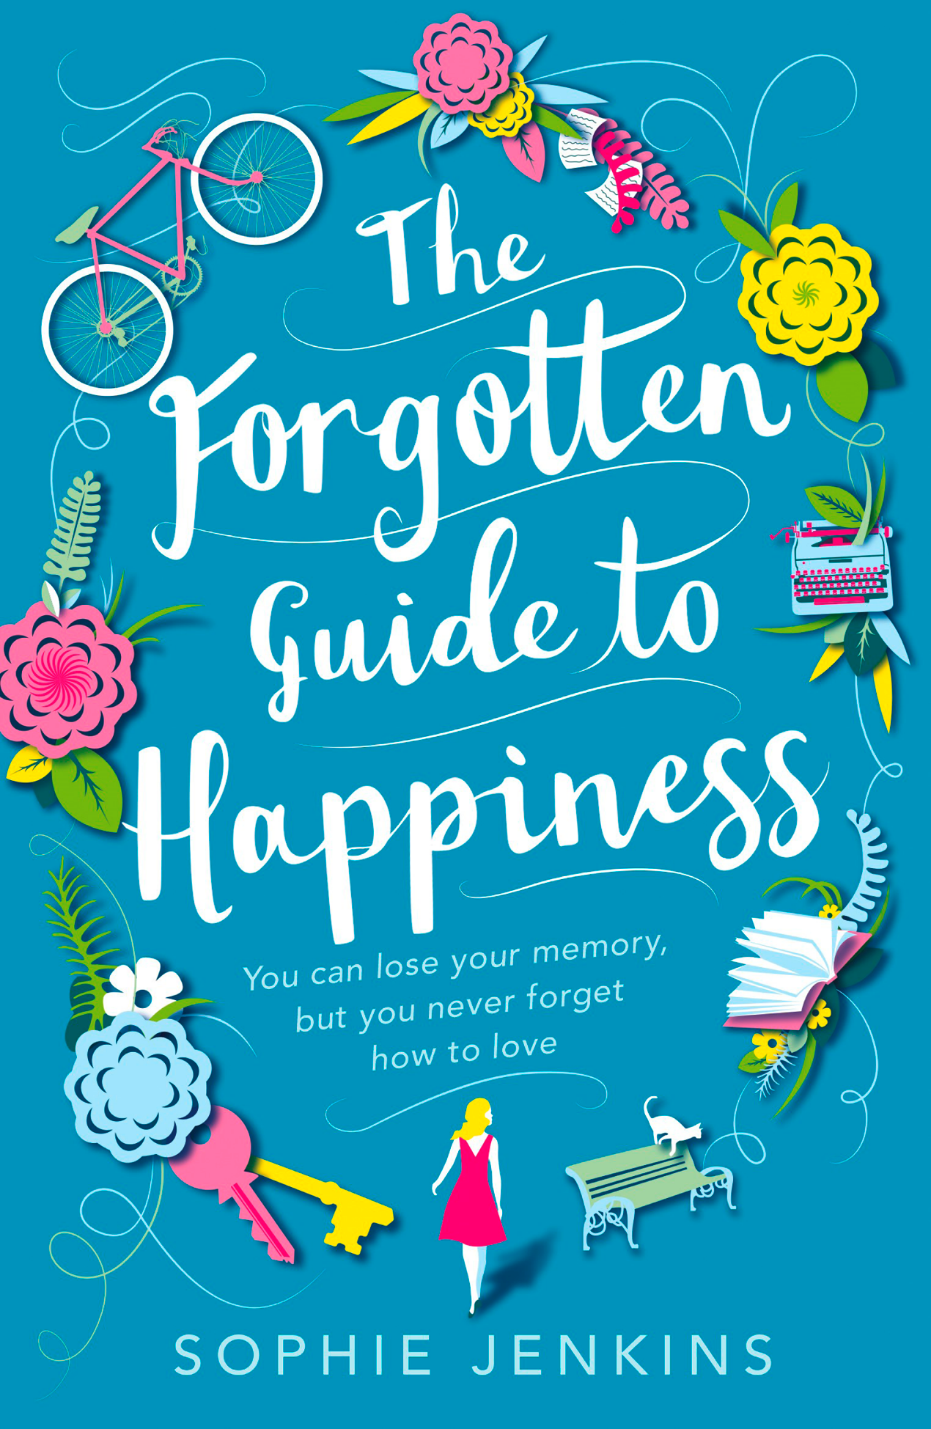 THE FORGOTTEN GUIDE TO HAPPINESS